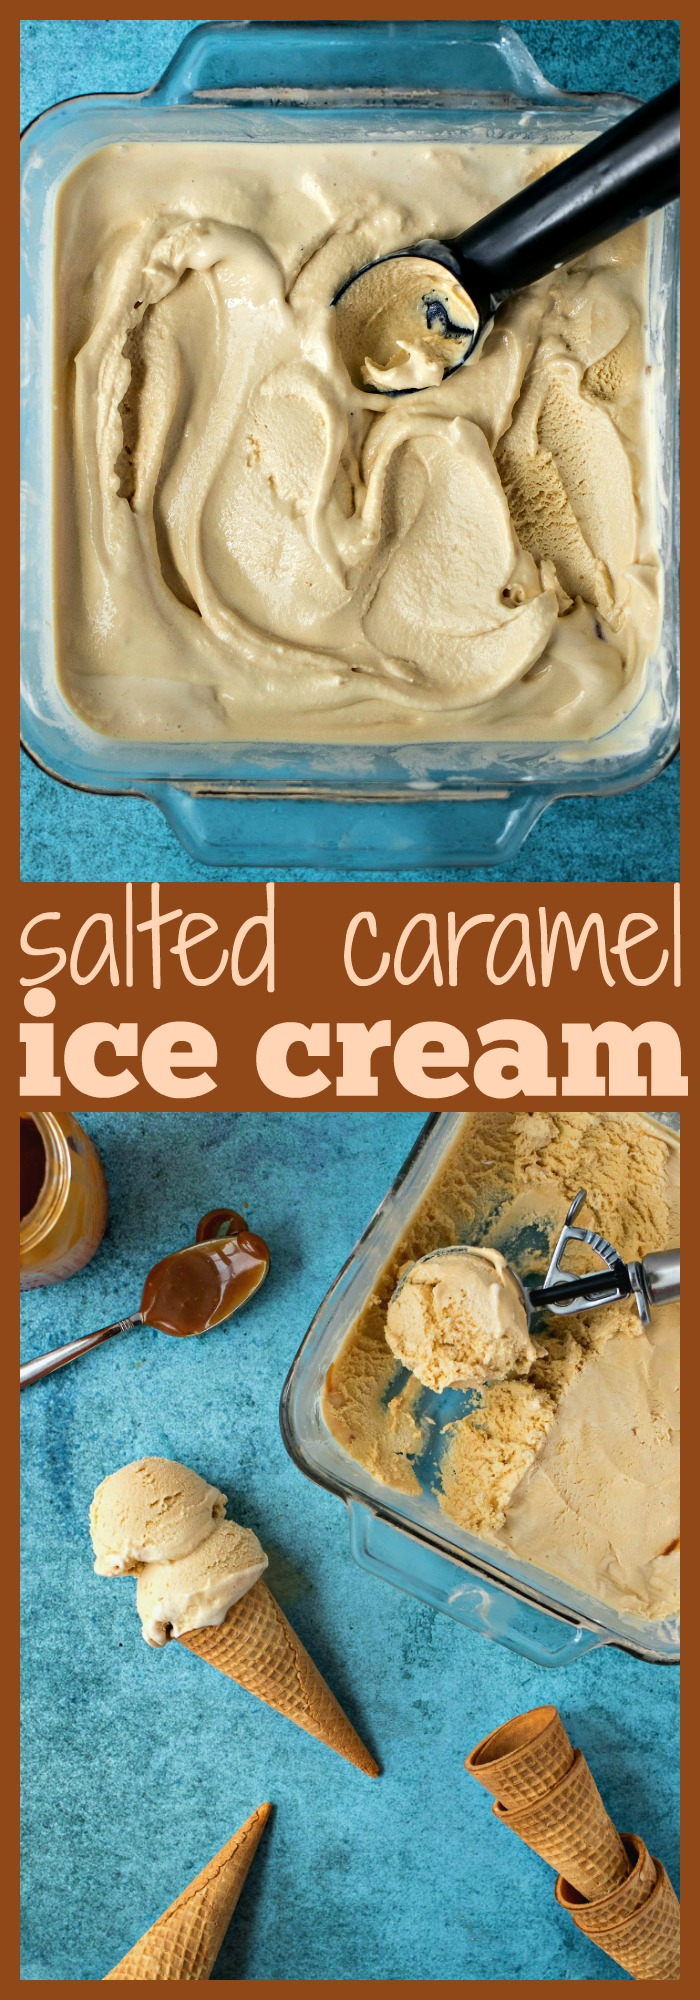 Salted Caramel Ice Cream photo collage